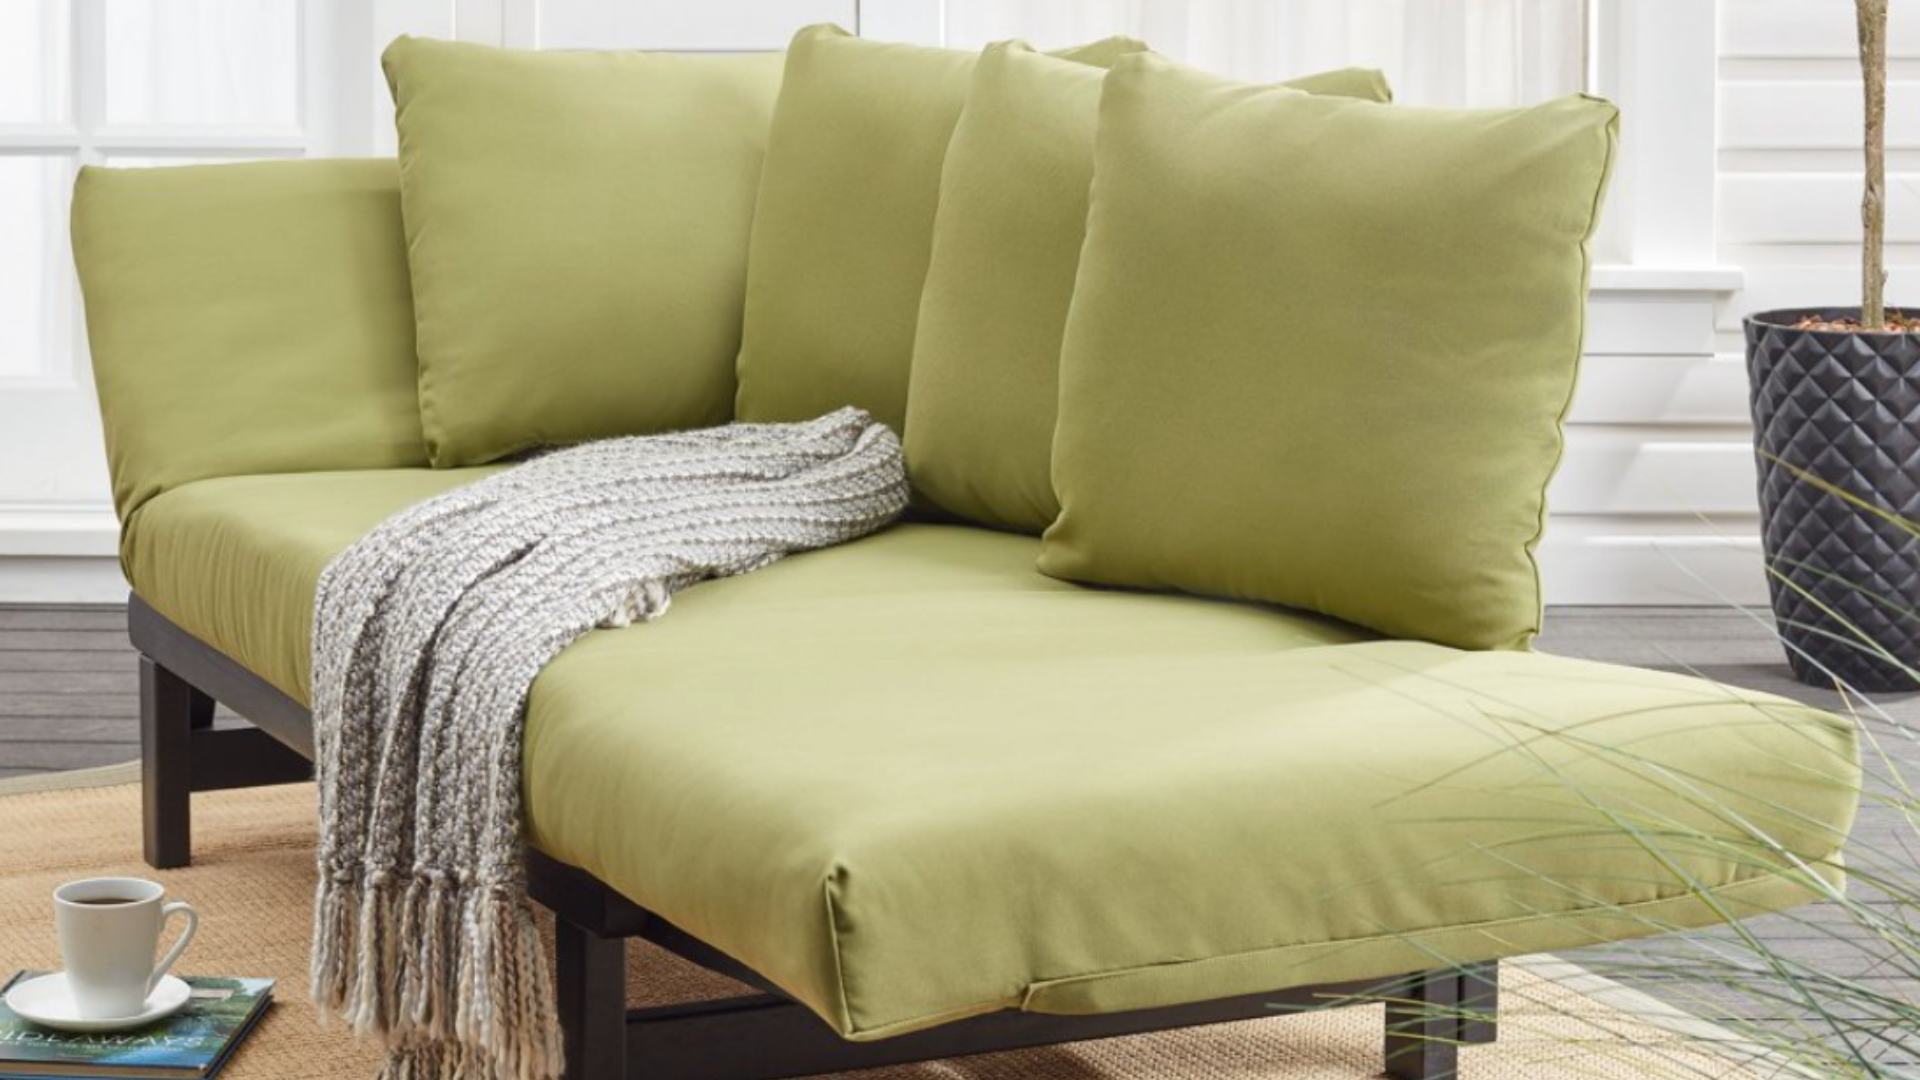 19 gorgeous patio furniture pieces you won't believe are in stock at Walmart